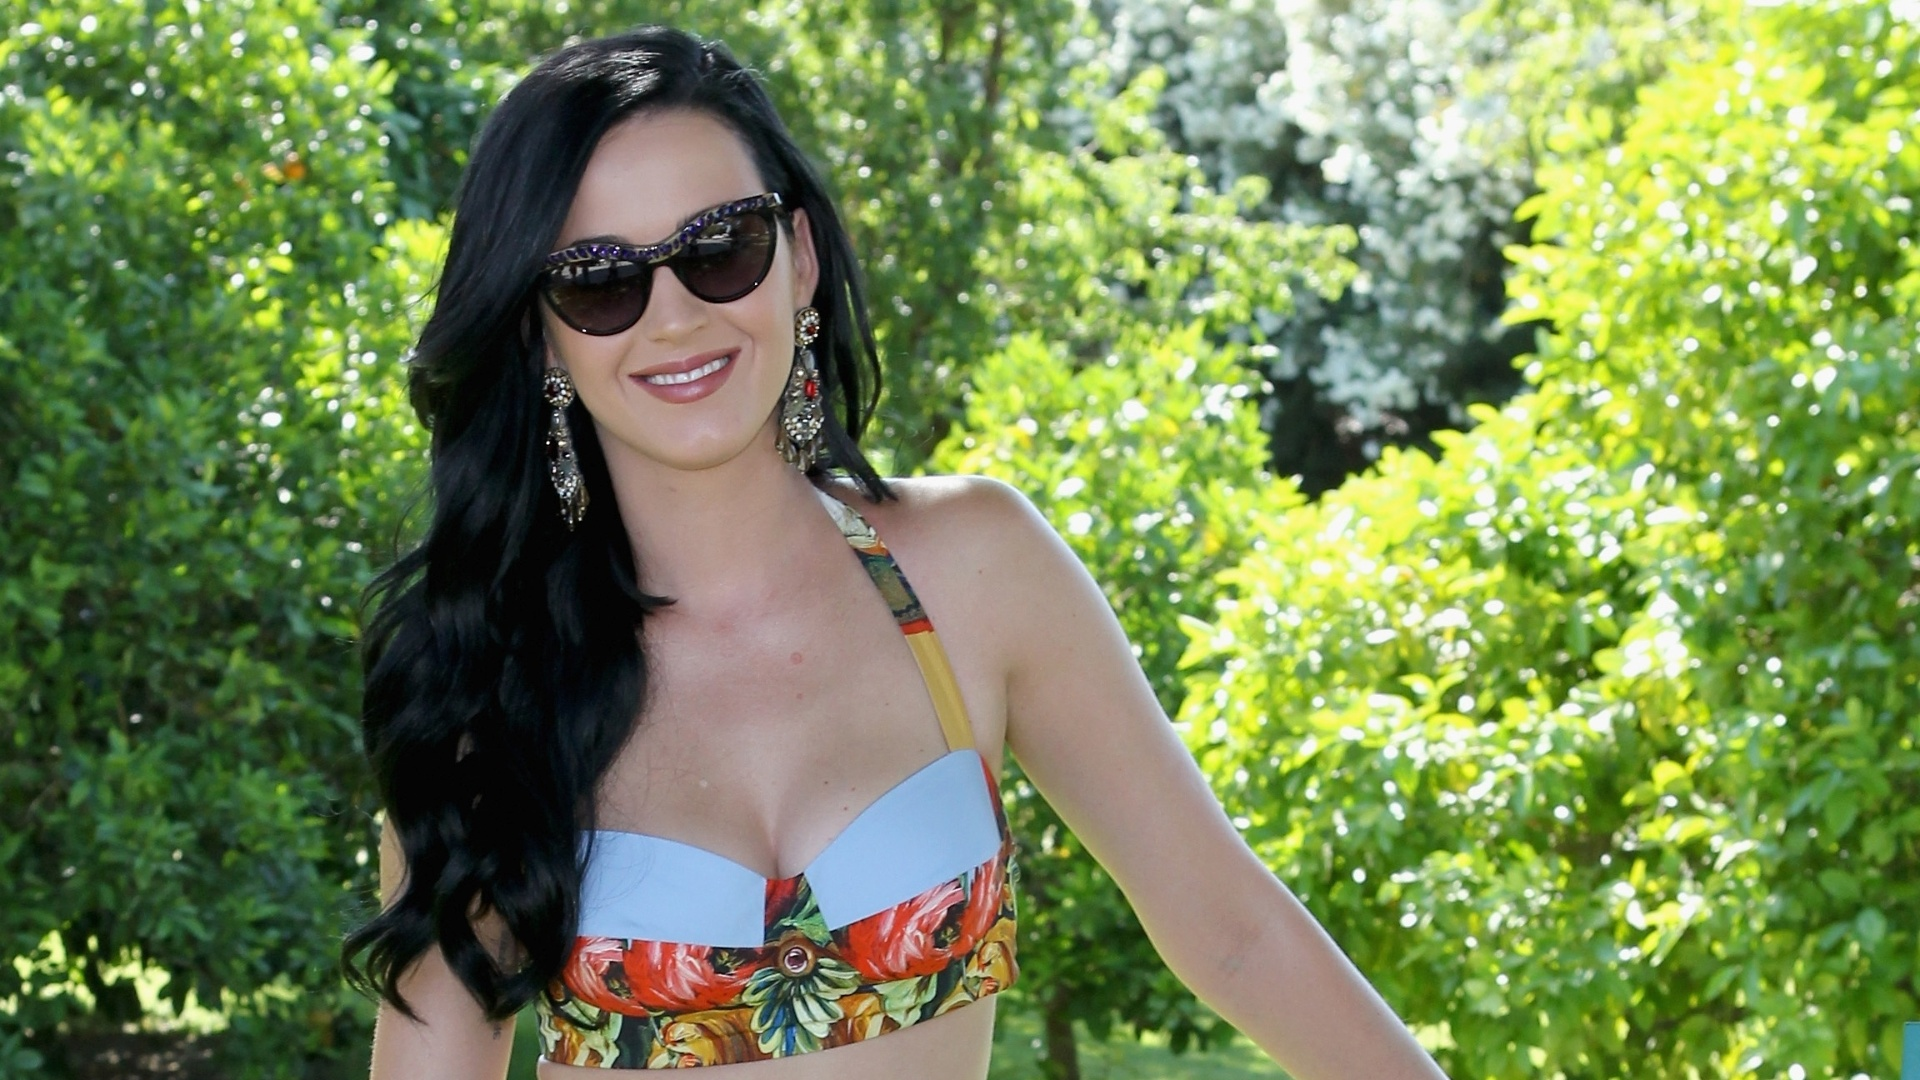 13.abr. 2013 - Katy Perry confere evento durante o Coachella Valley Music & Arts Festival no Empire Polo Field na cidade de Indio, na Califórnia